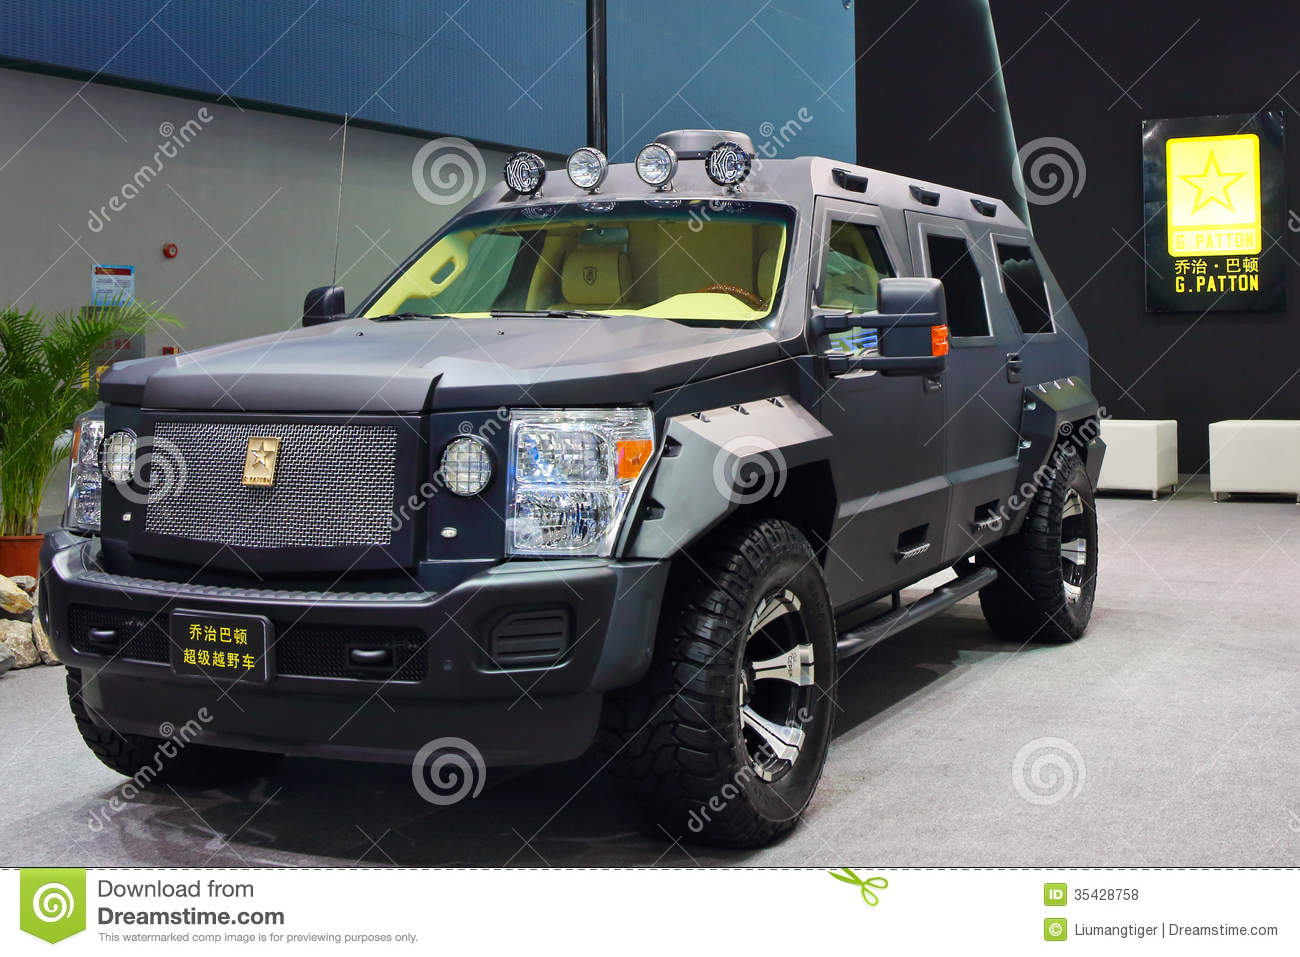 Audio Car Wallpaper Download George Patton Editorial Stock Photo Image Of Luxury